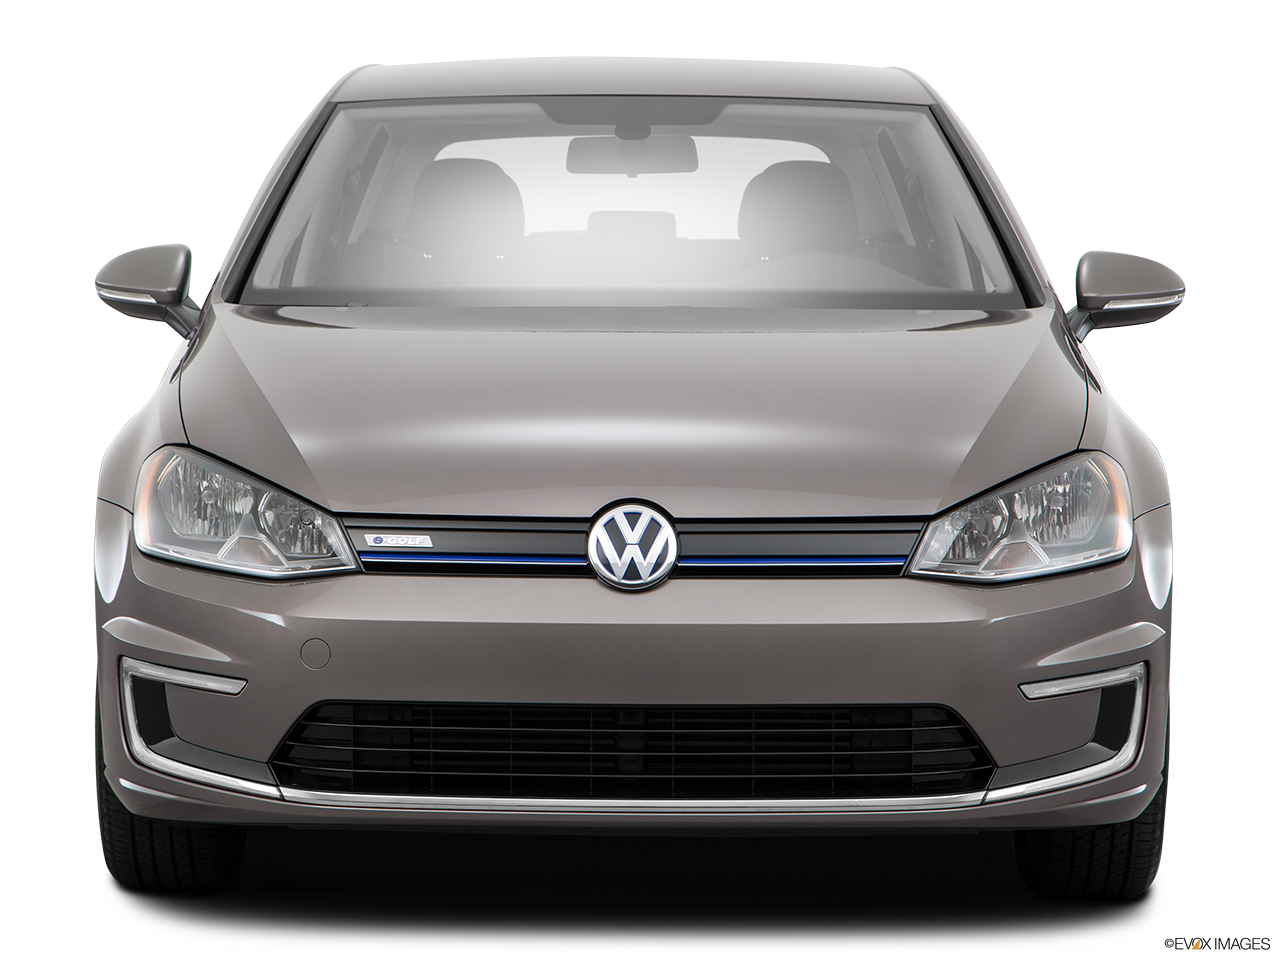 Front view of the Volkswagen e-Golf